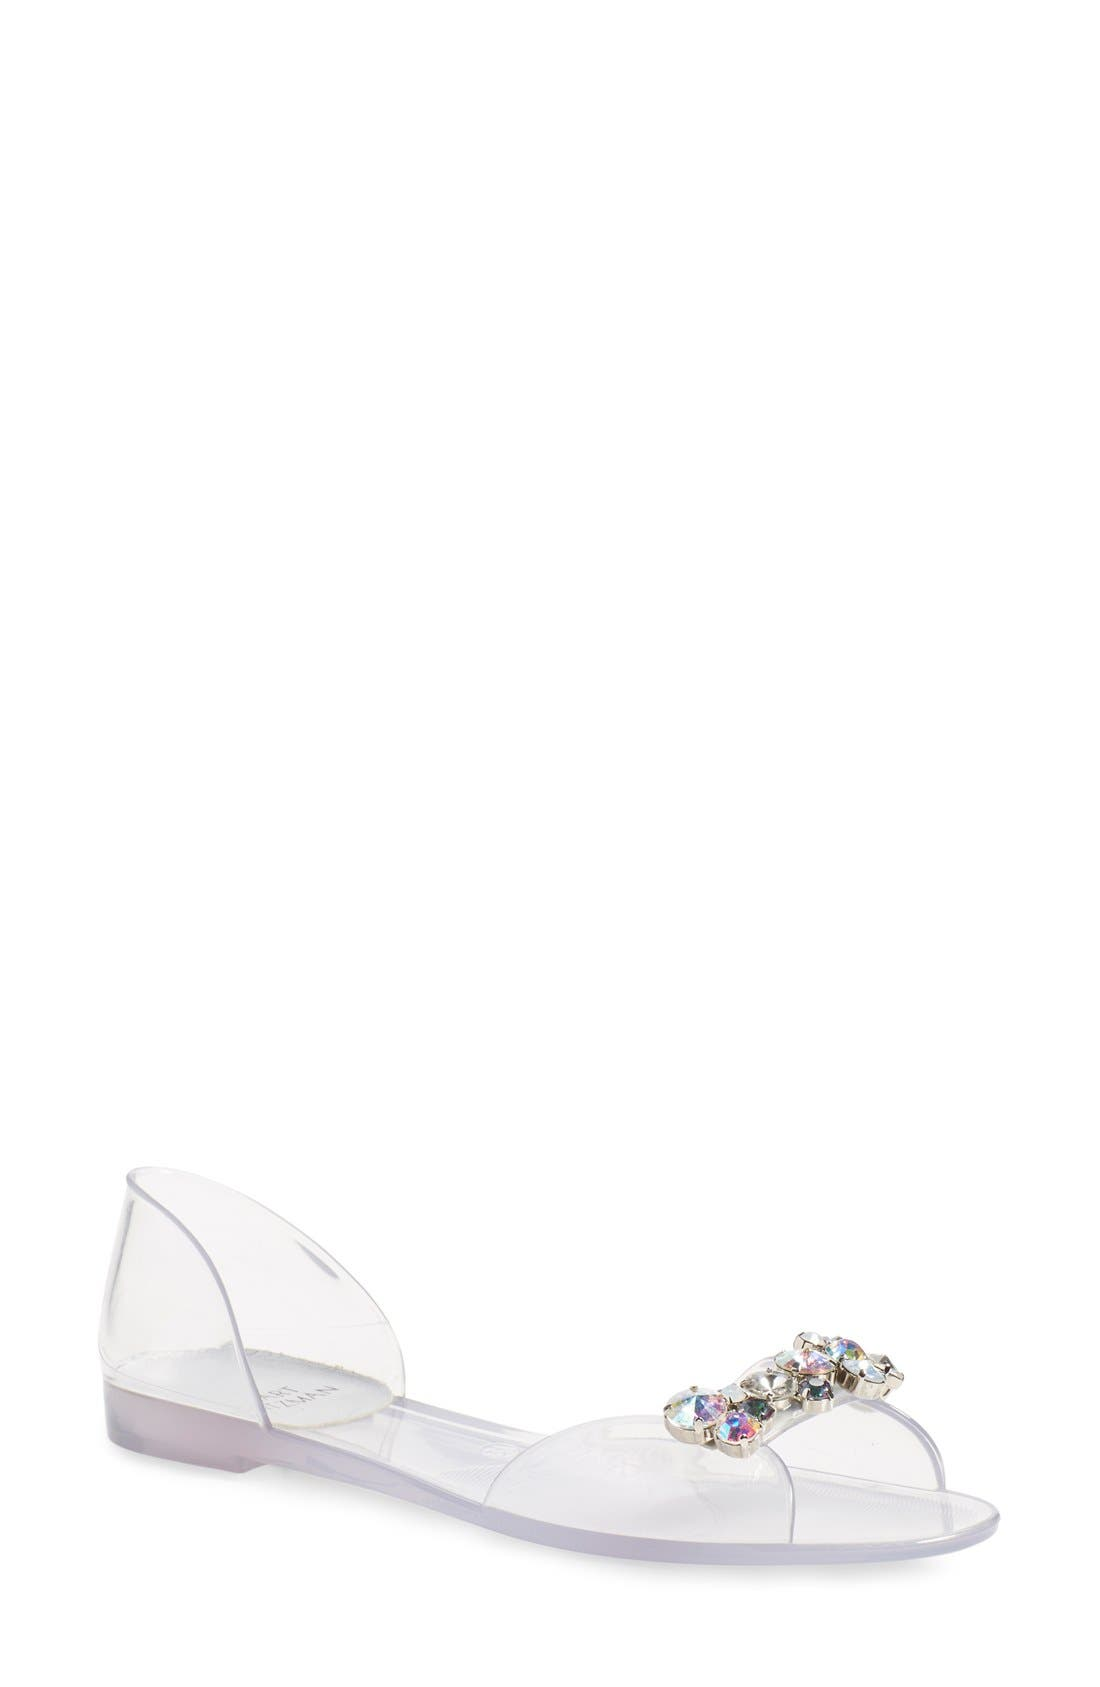 Alternate Image 1 Selected - Stuart Weitzman 'Jubilee' d'Orsay Sandal (Women)